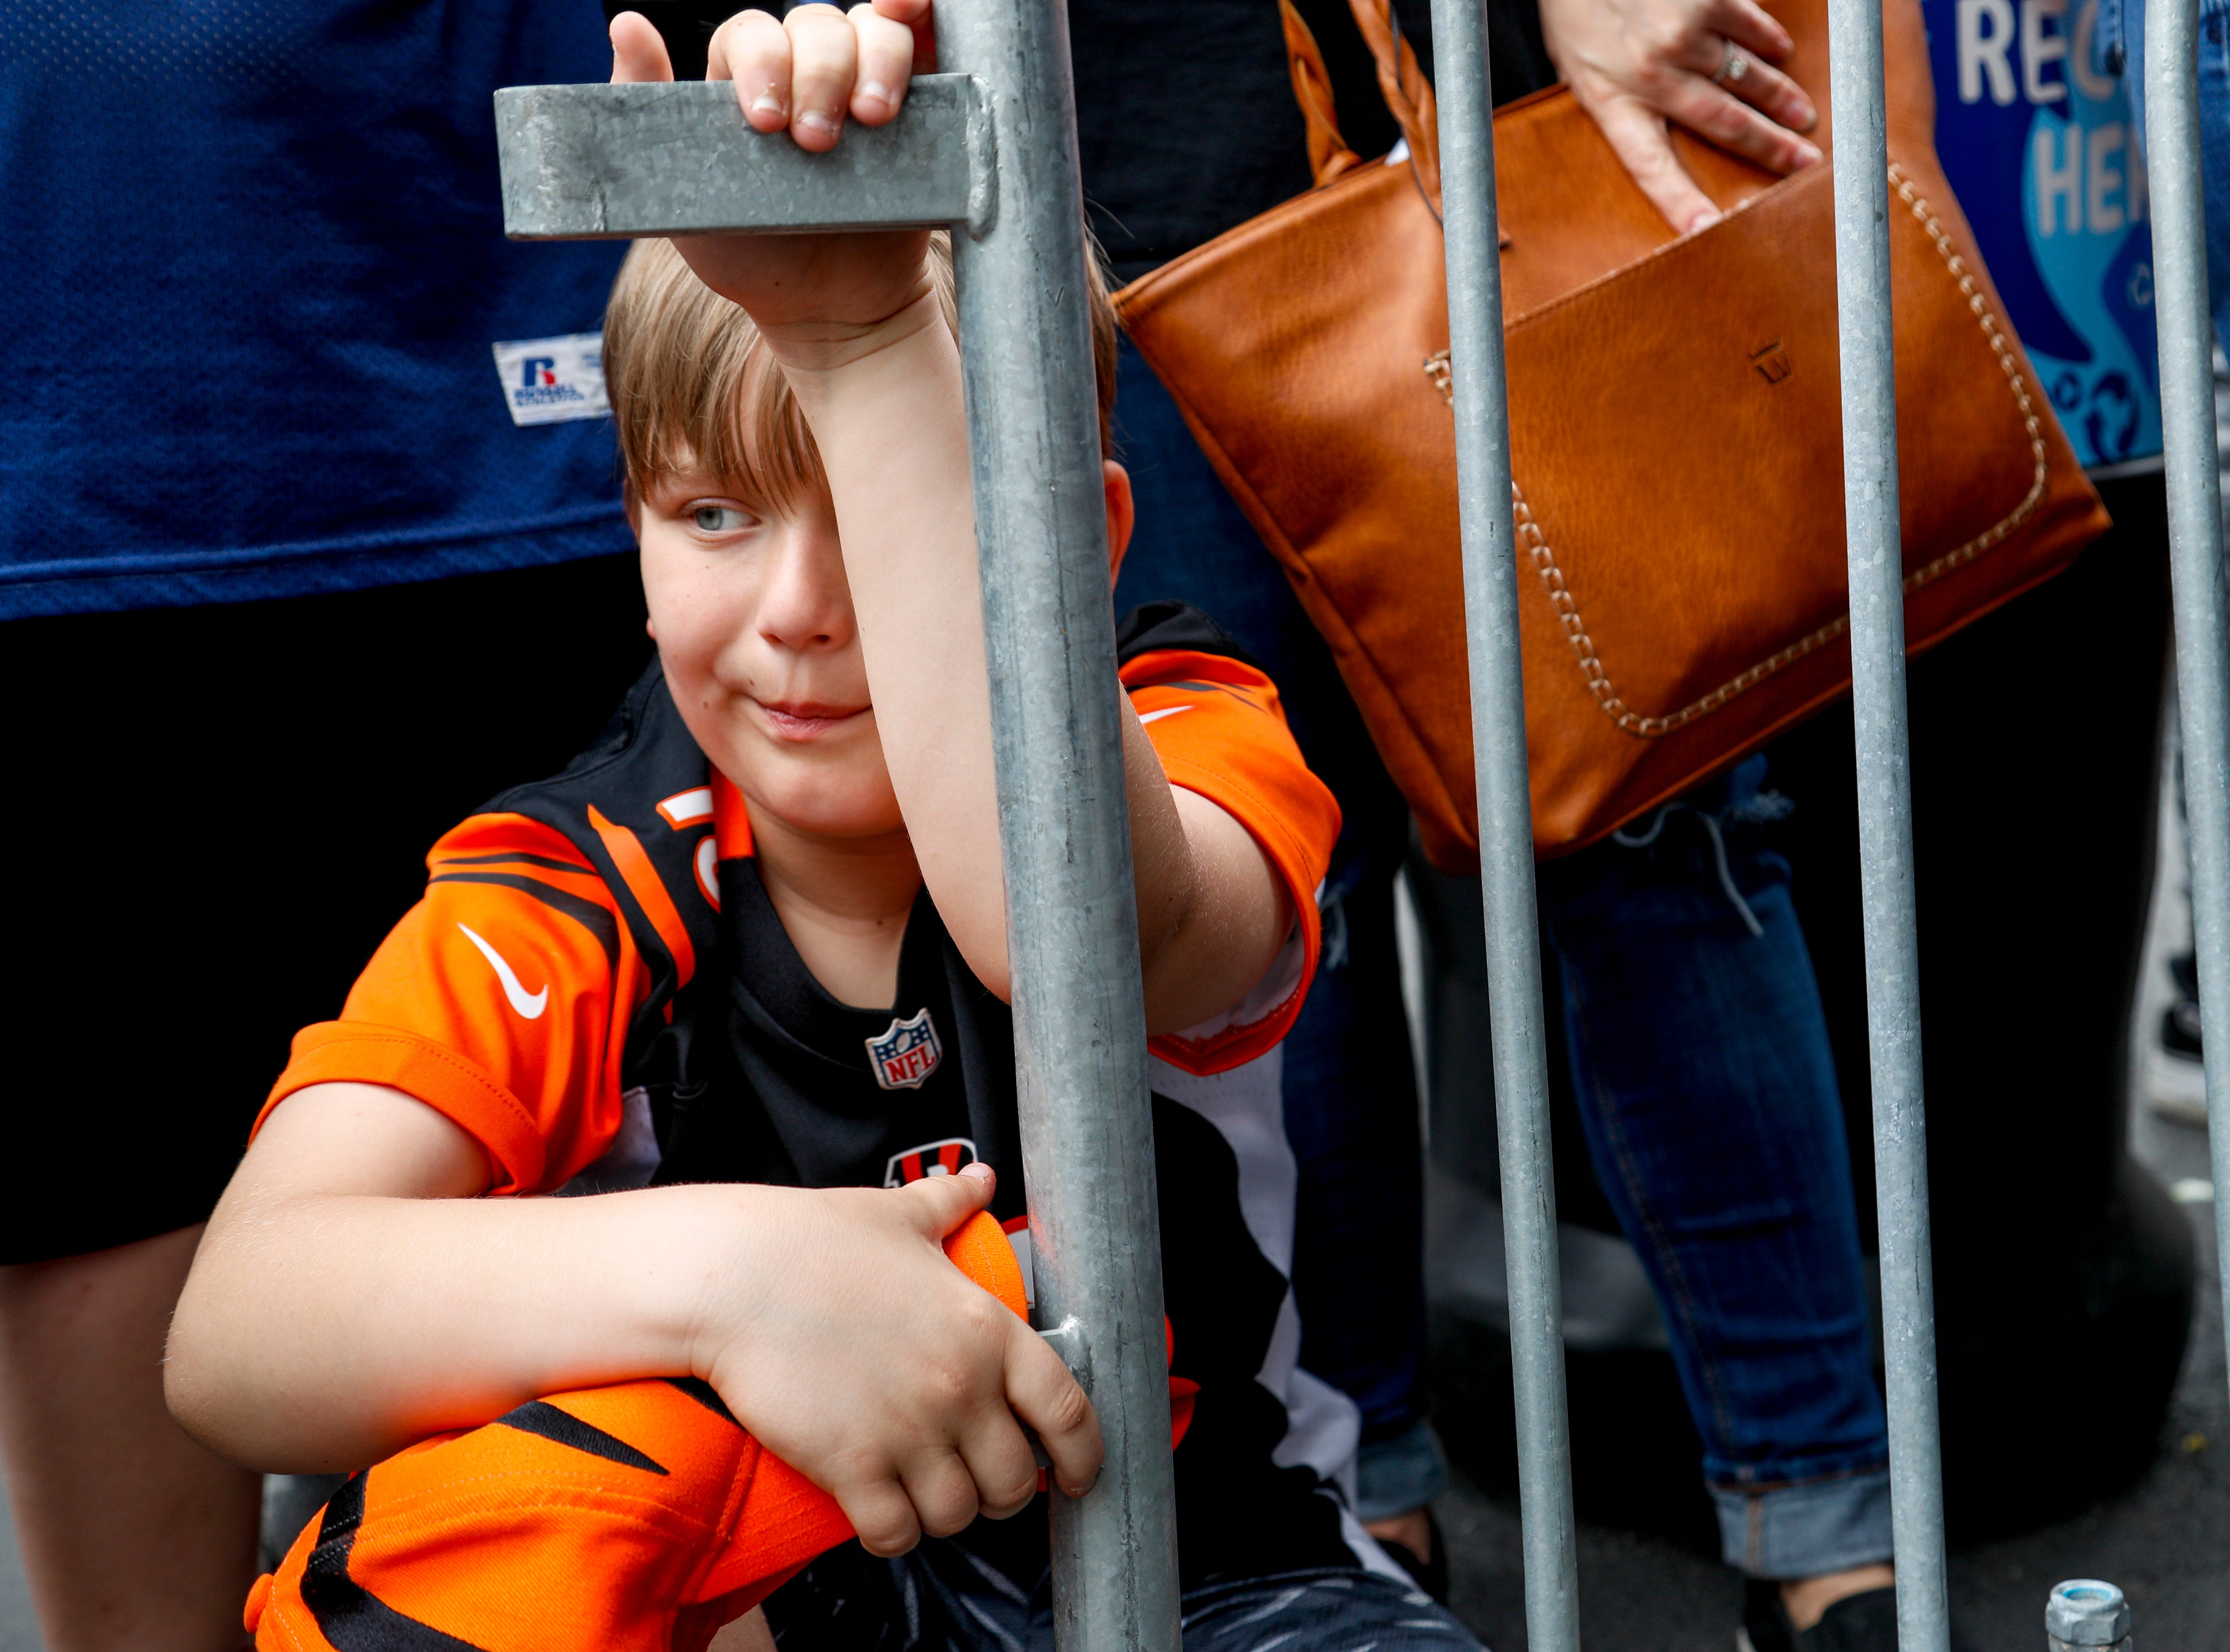 Dawson Early, 10, kneels down while waiting patiently for Derrick Henry to appear during the NFL Draft Experience at Nissan Stadium in Nashville, Tenn., on Thursday, April 25, 2019.